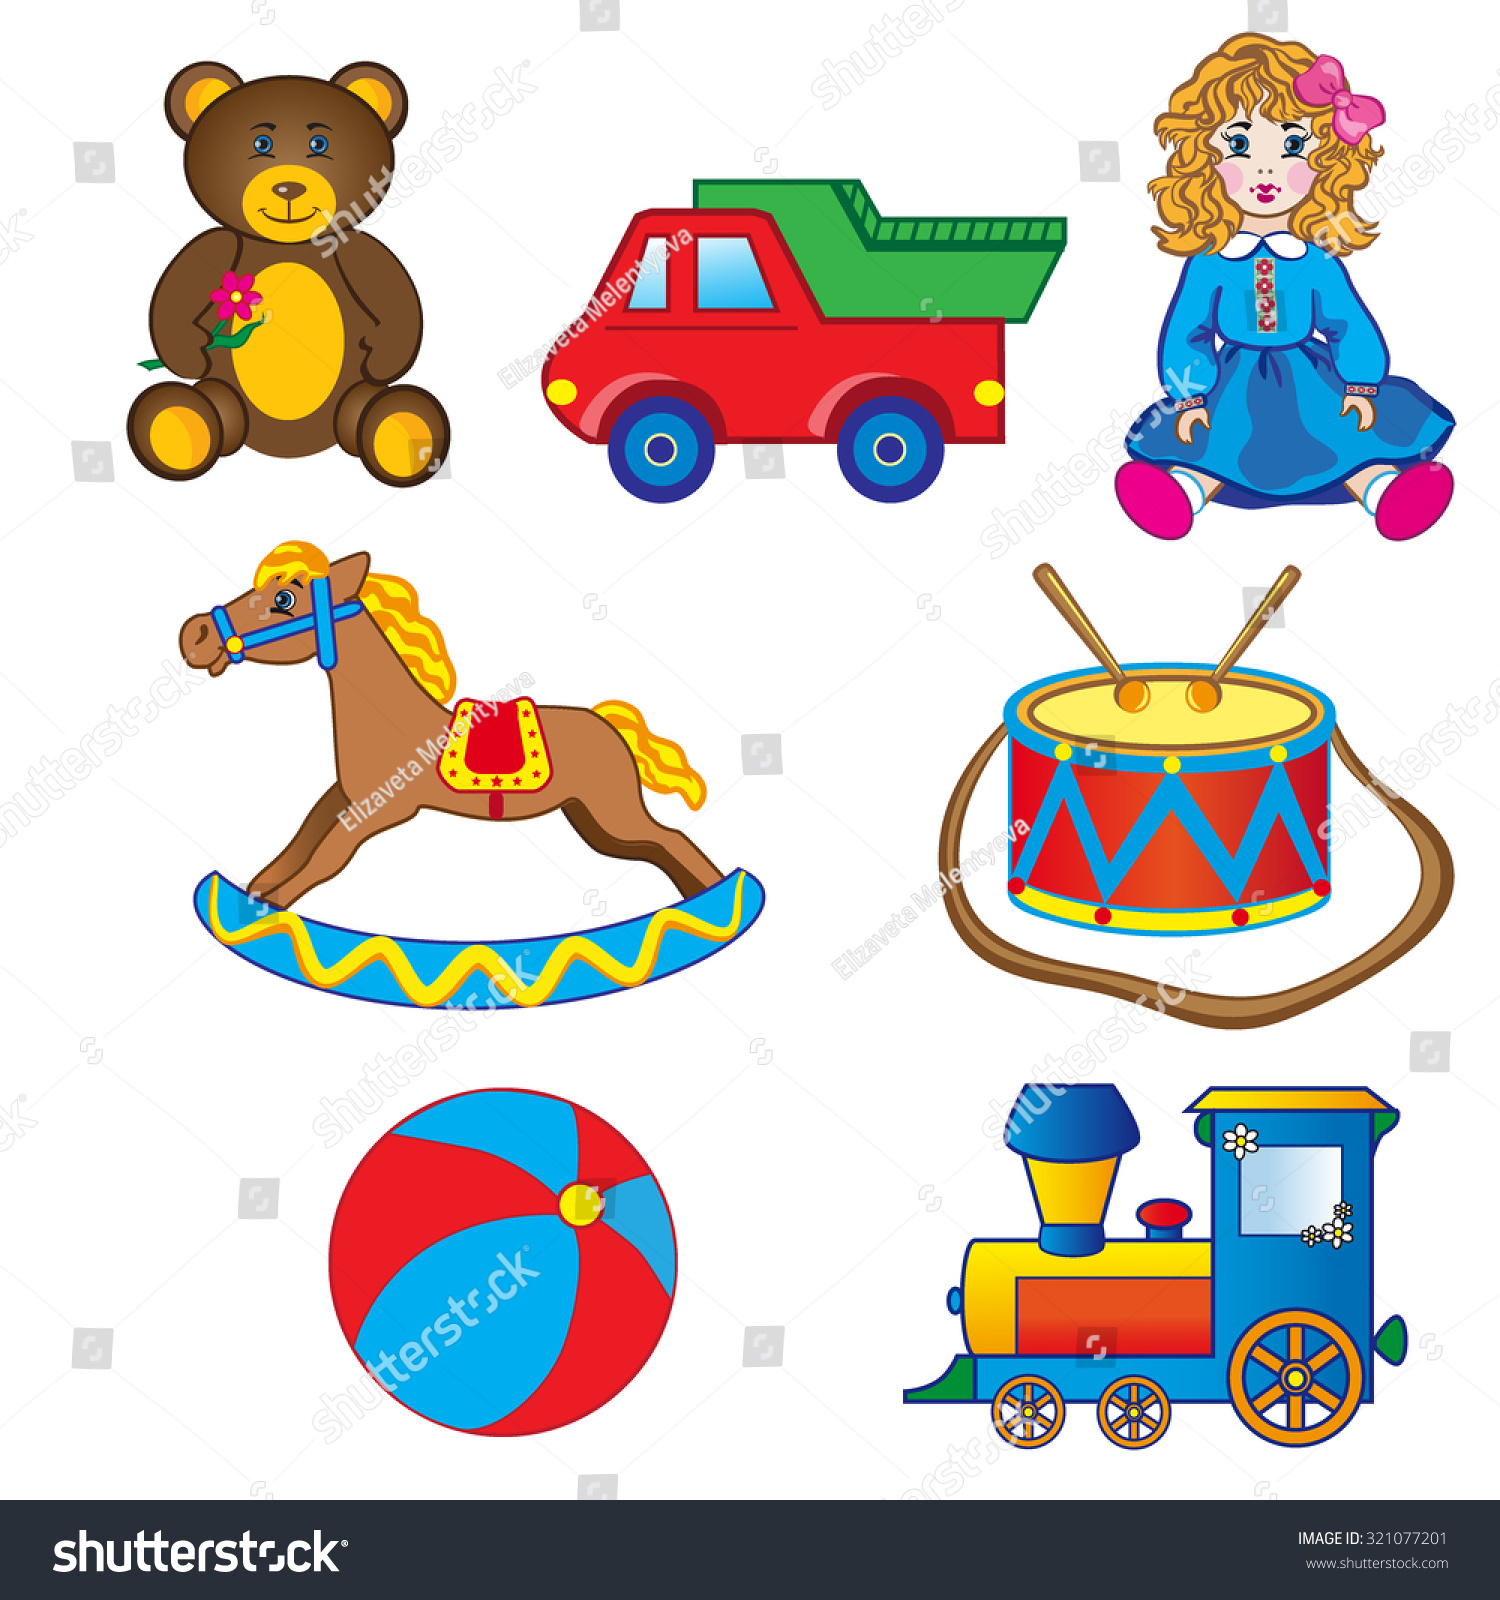 Baby Toys Drawing : Baby toy drawings car bear horse stock vector